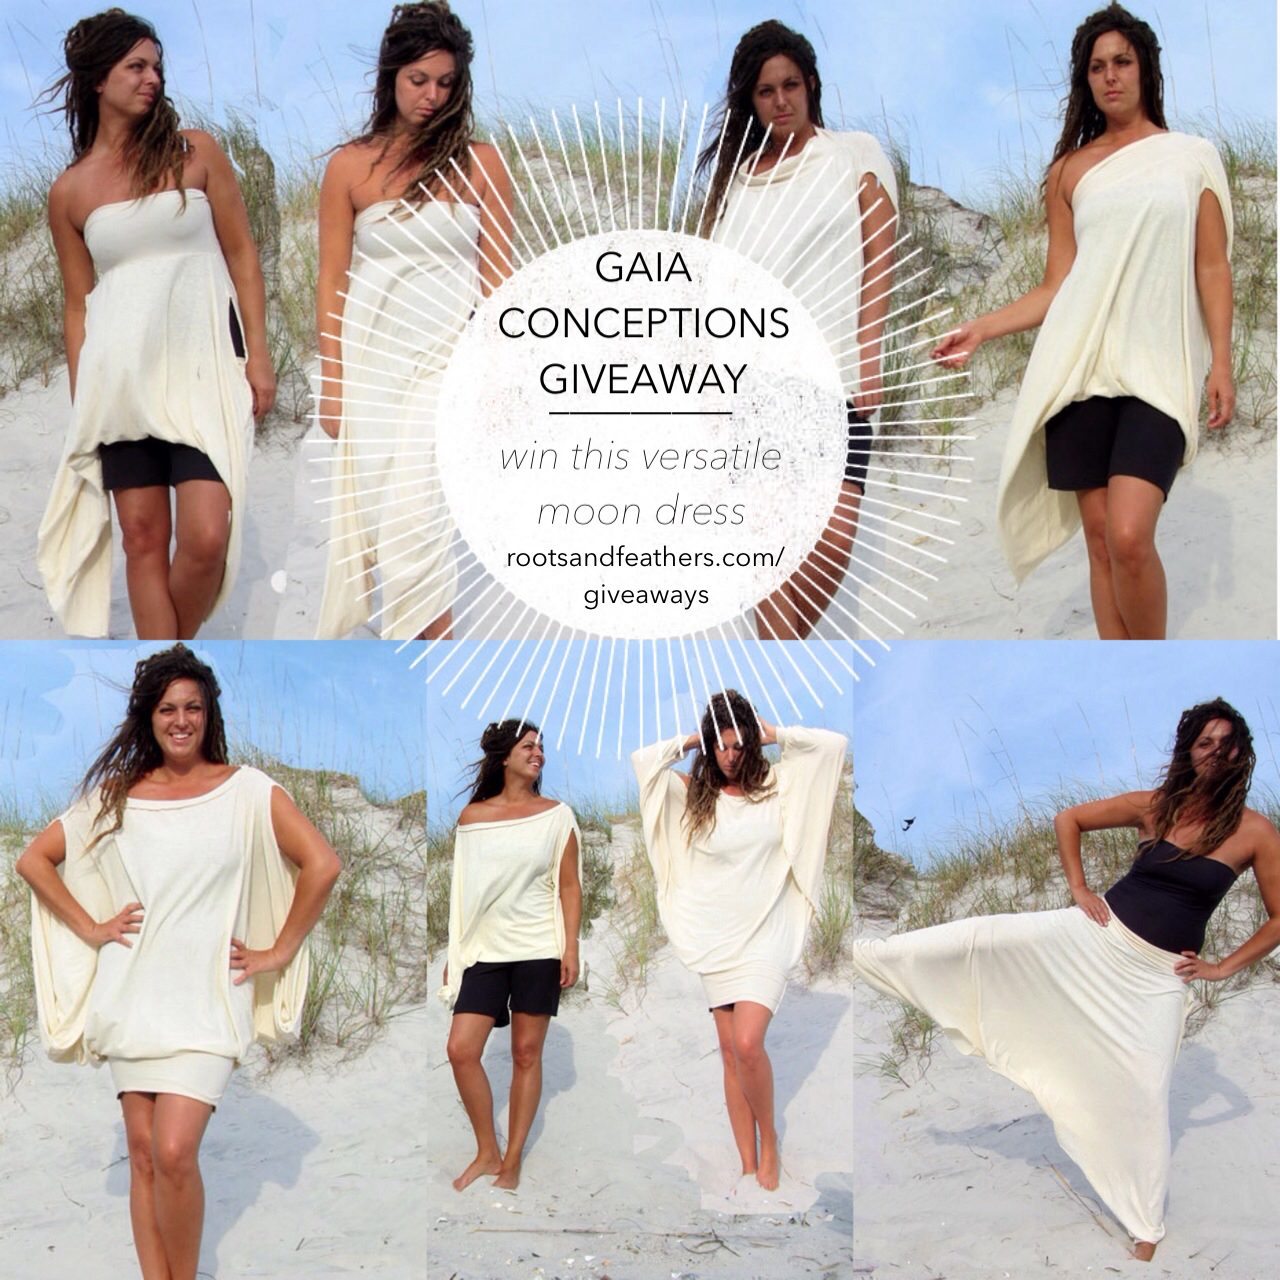 Gaia Conceptions Moon Dress Giveaway